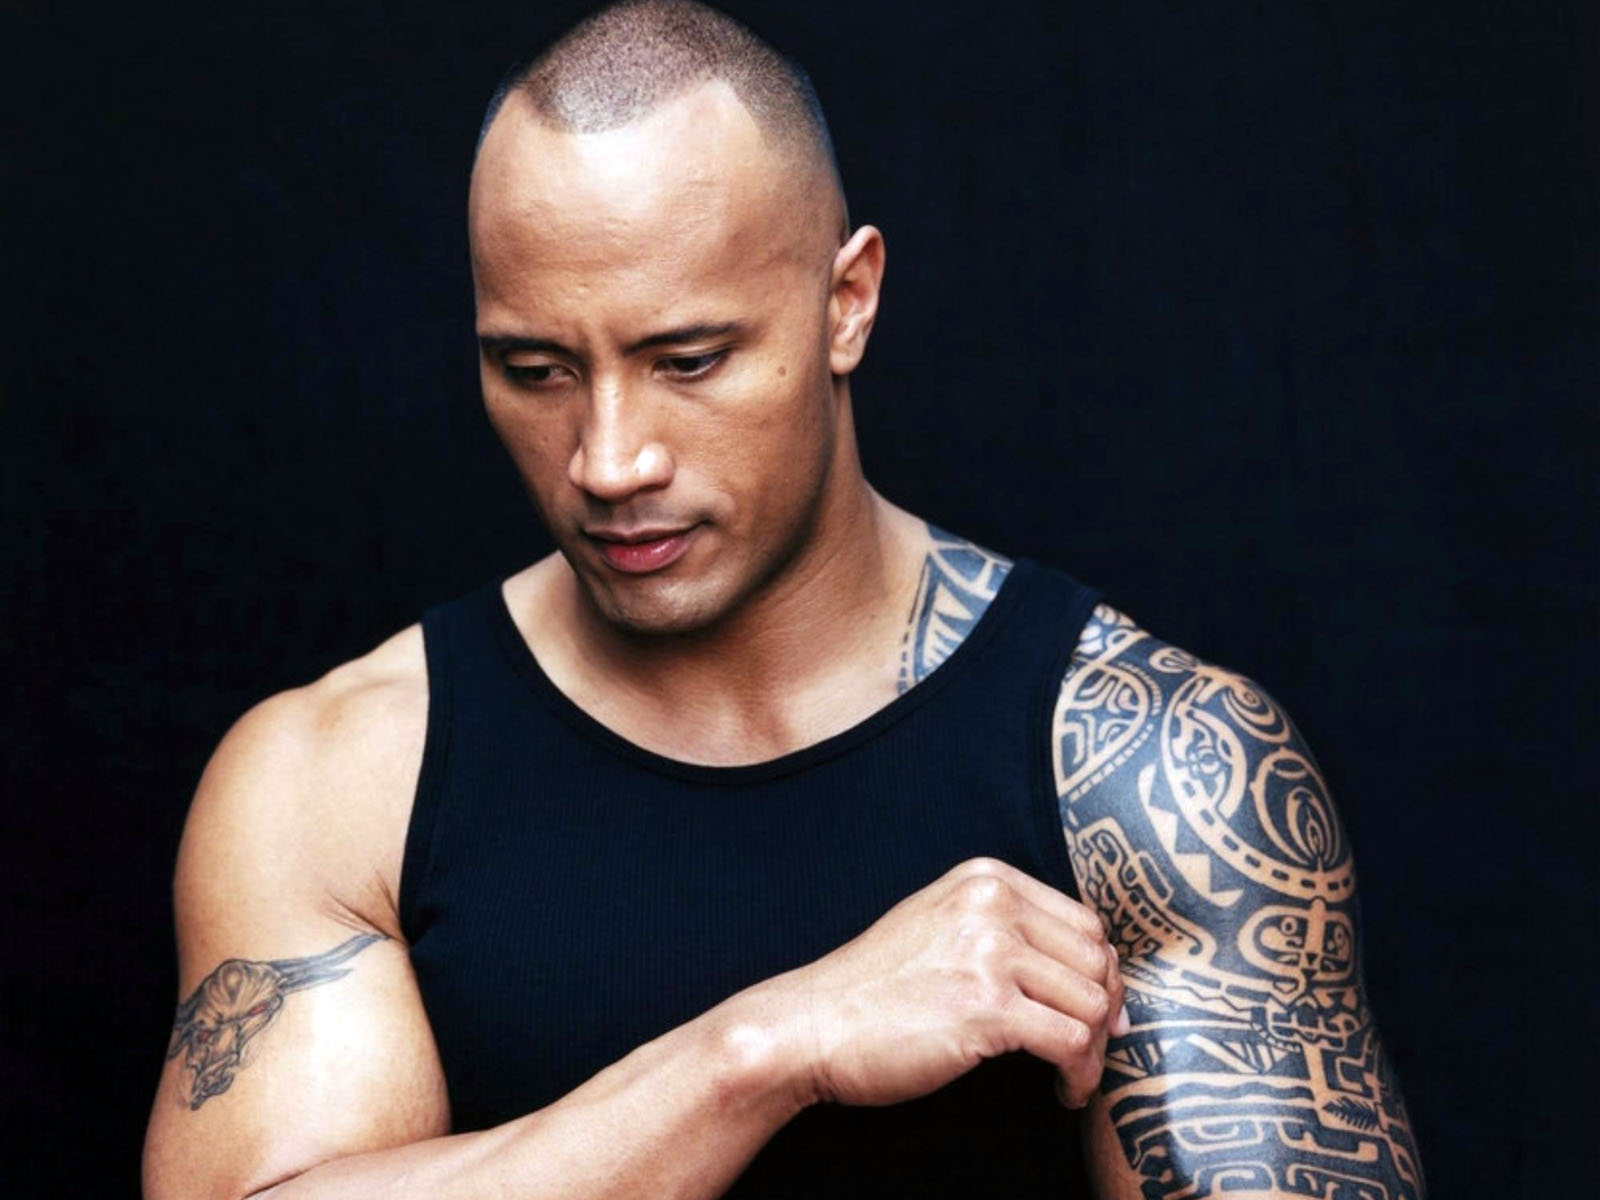 http://4.bp.blogspot.com/-ub_ZQLSbi-E/TorfwLF4bNI/AAAAAAAAALU/06krKPceRQg/s1600/Dwayne-Johnson-tattoos-actor-the-rock-hd-desktop-wallpaper-screensaver-background.jpg